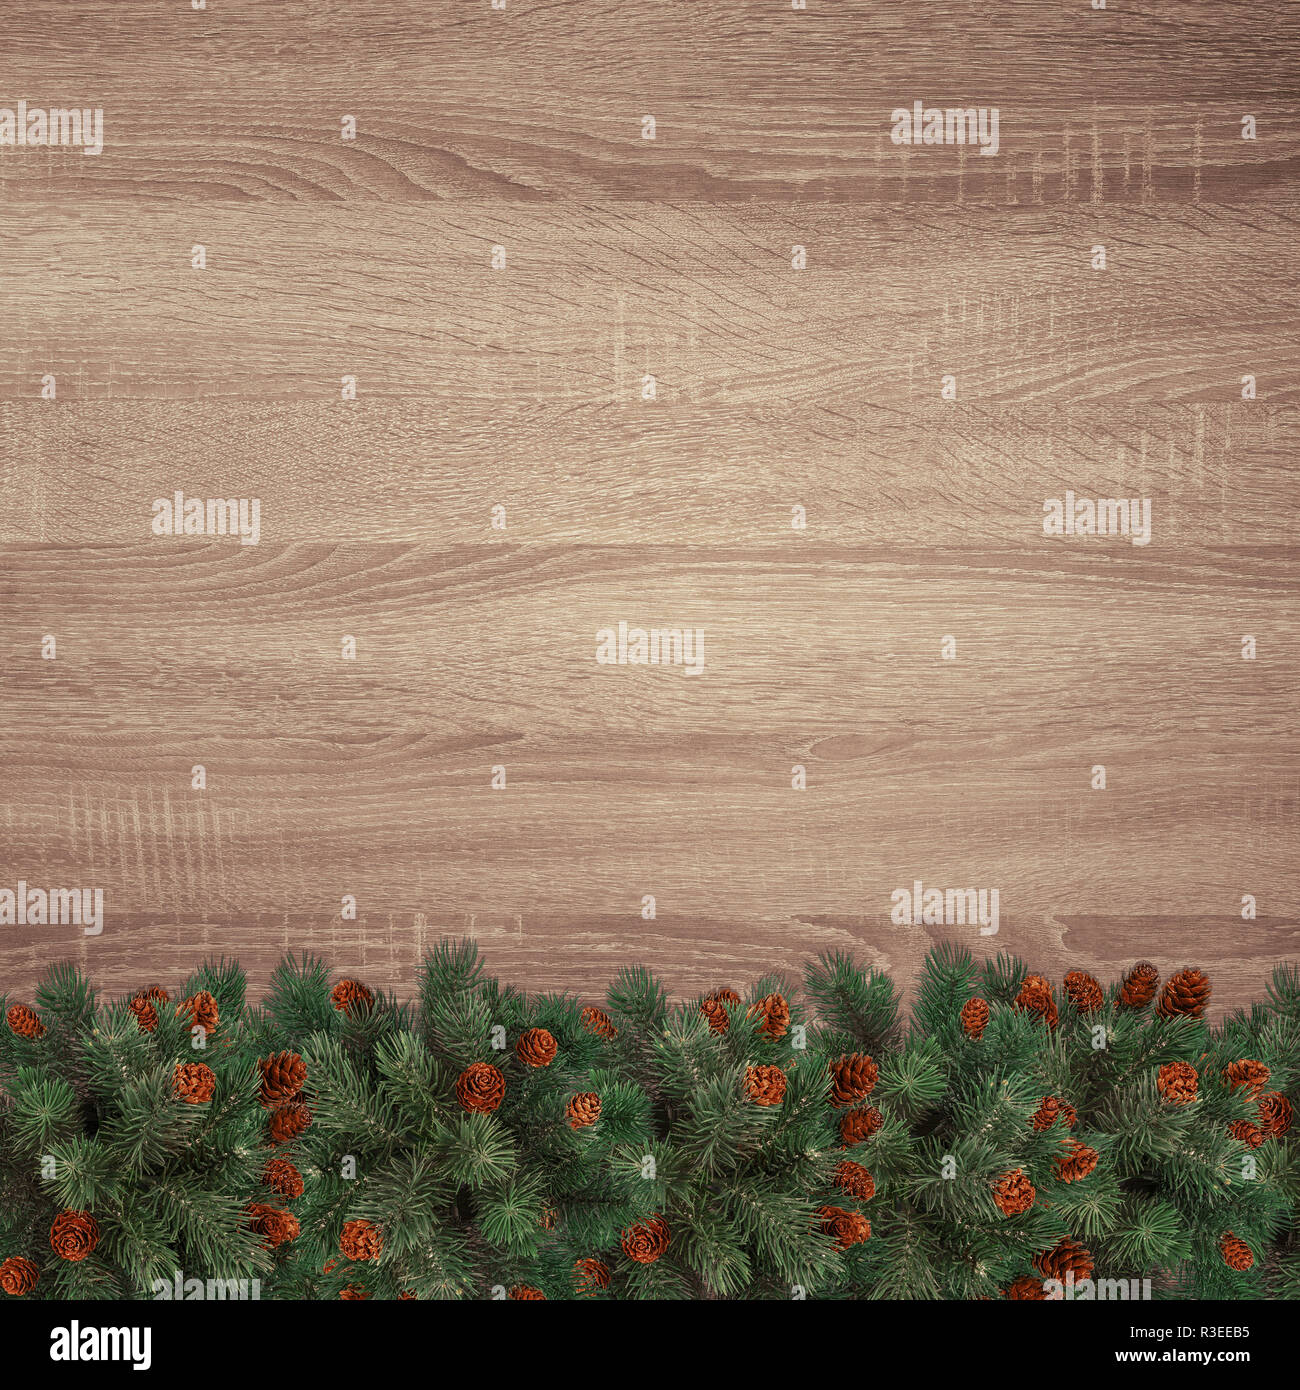 Evergreen fir branches on brown wooden texture background Stock Photo